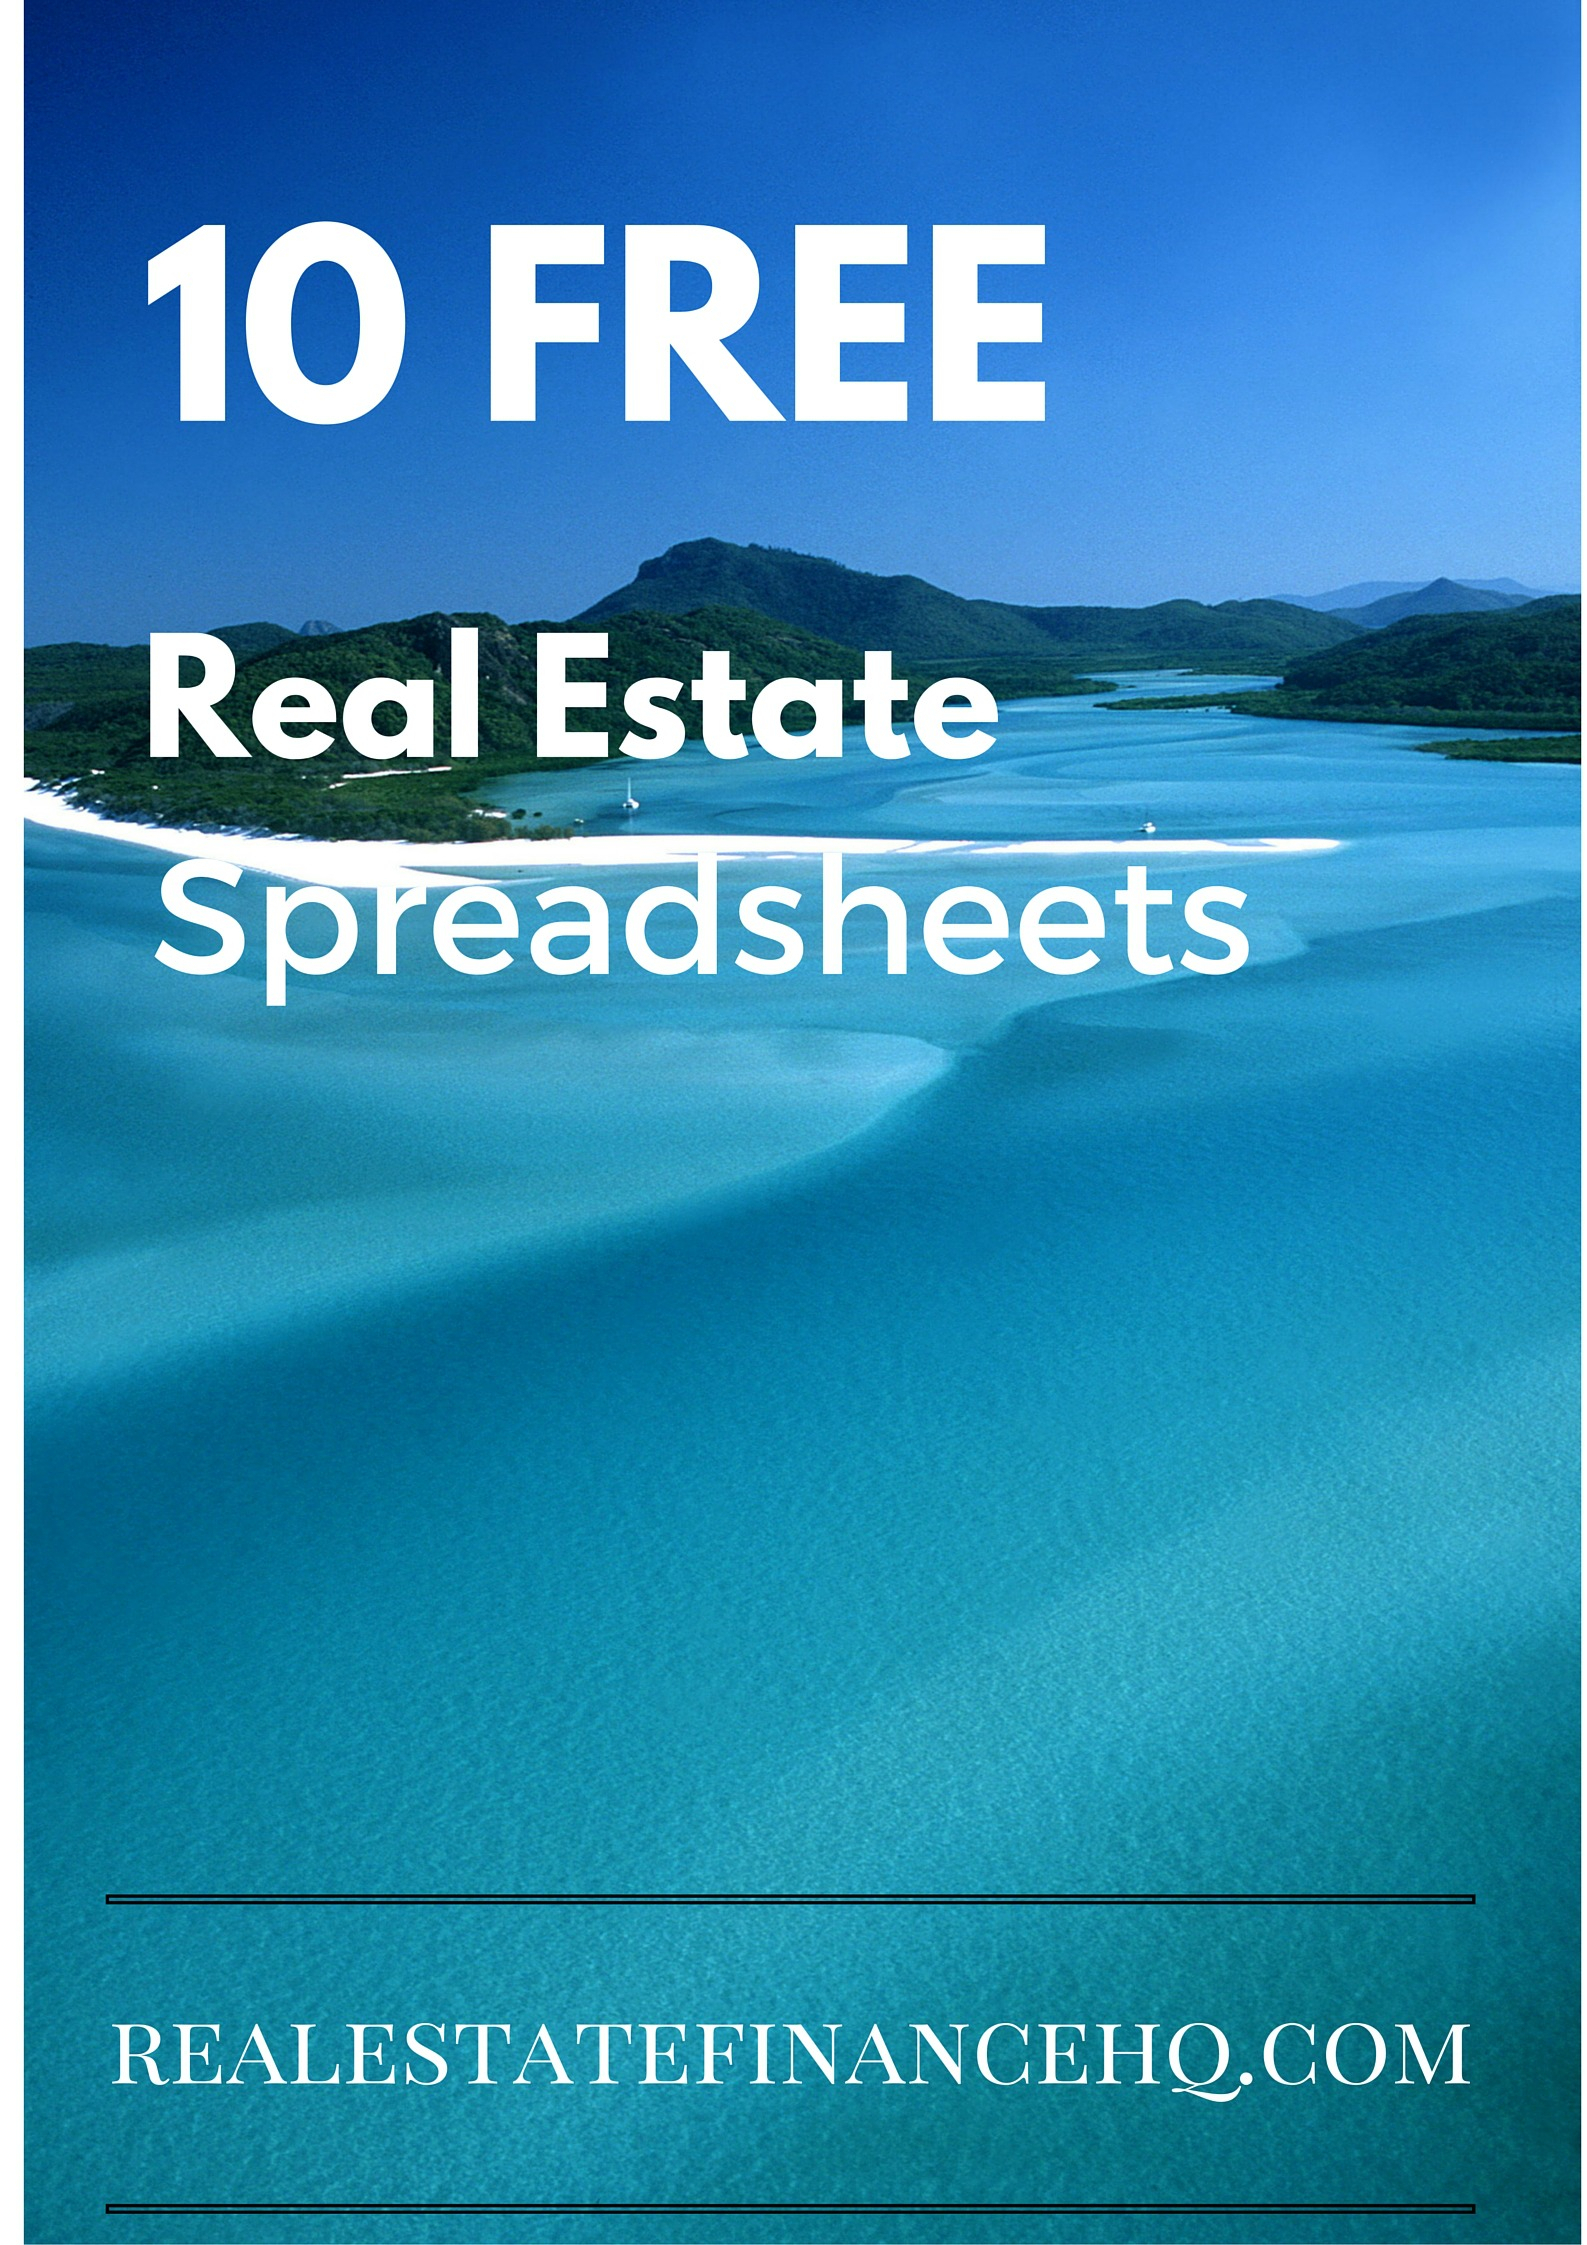 House Flip Spreadsheet Excel Intended For 10 Free Real Estate Spreadsheets  Real Estate Finance